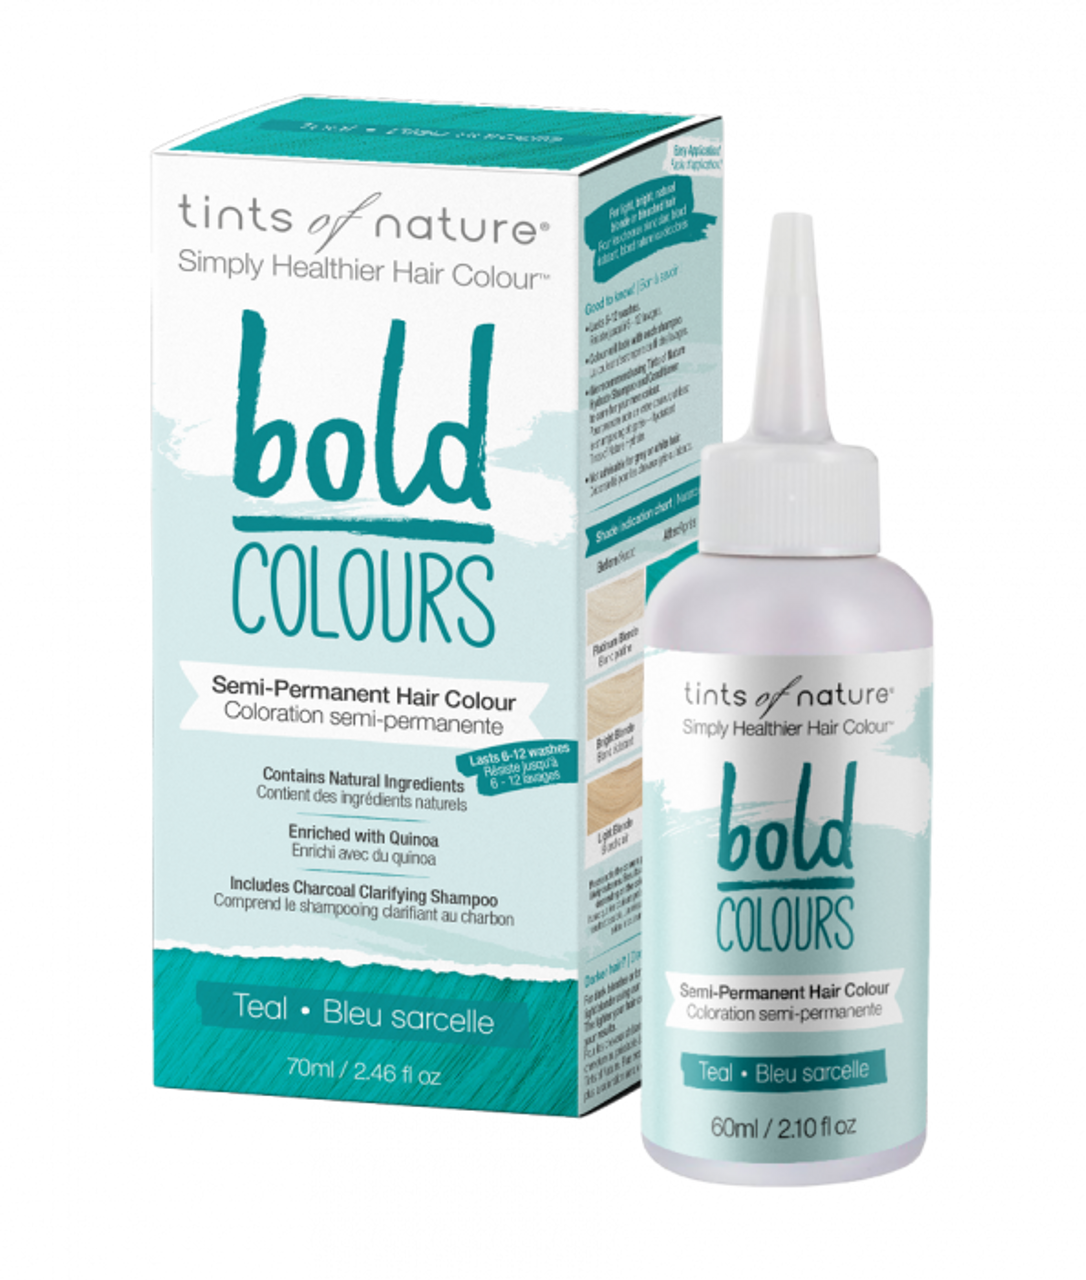 10 Culos tints of nature: bold teal (70ml)